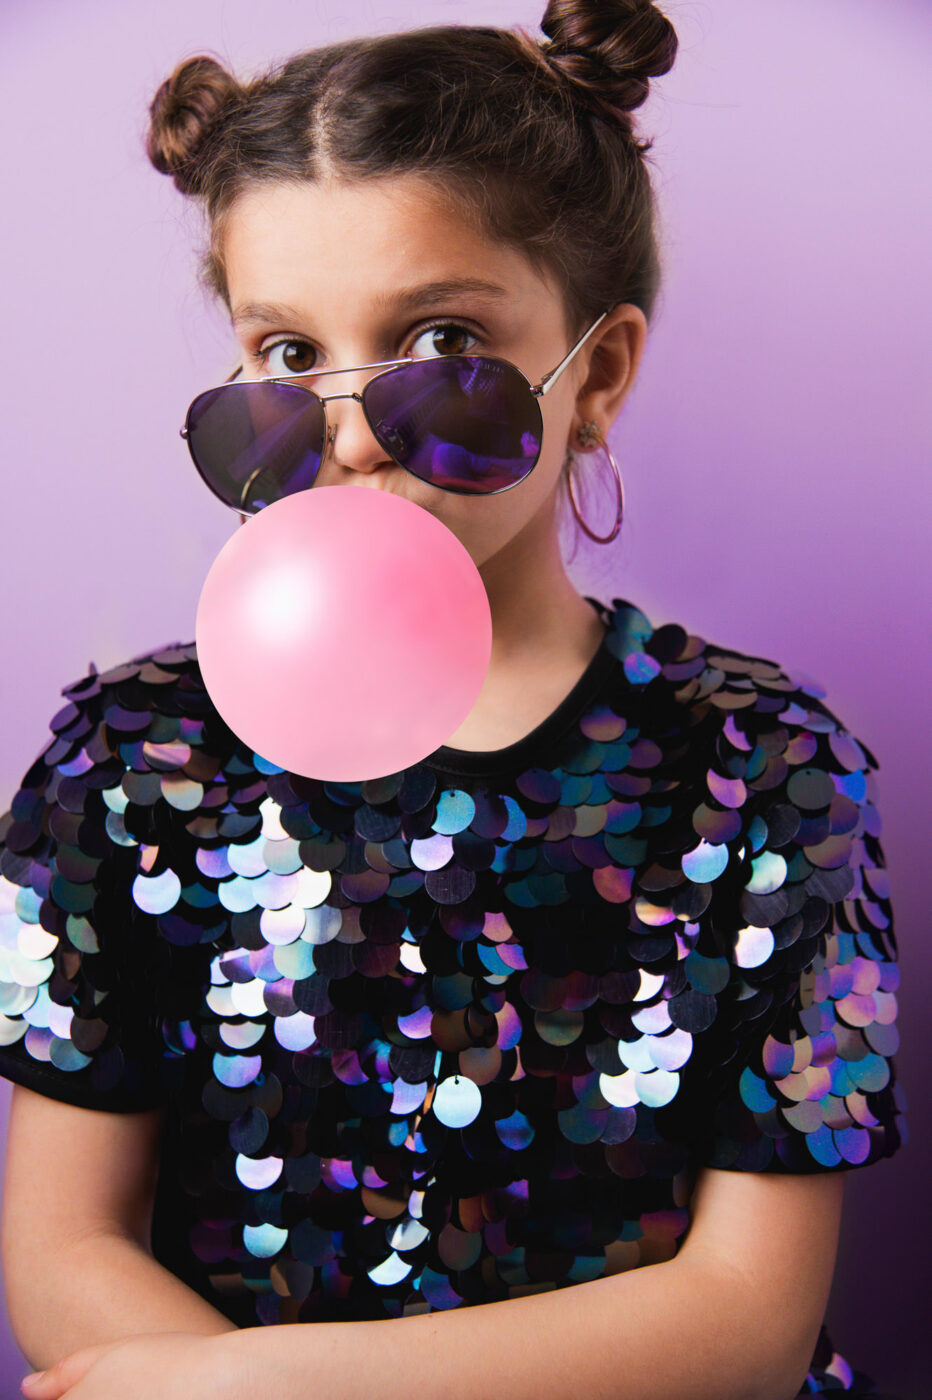 Girl in sequins and sunglasses blowing a bubble - Vanessa Guzzo Photography